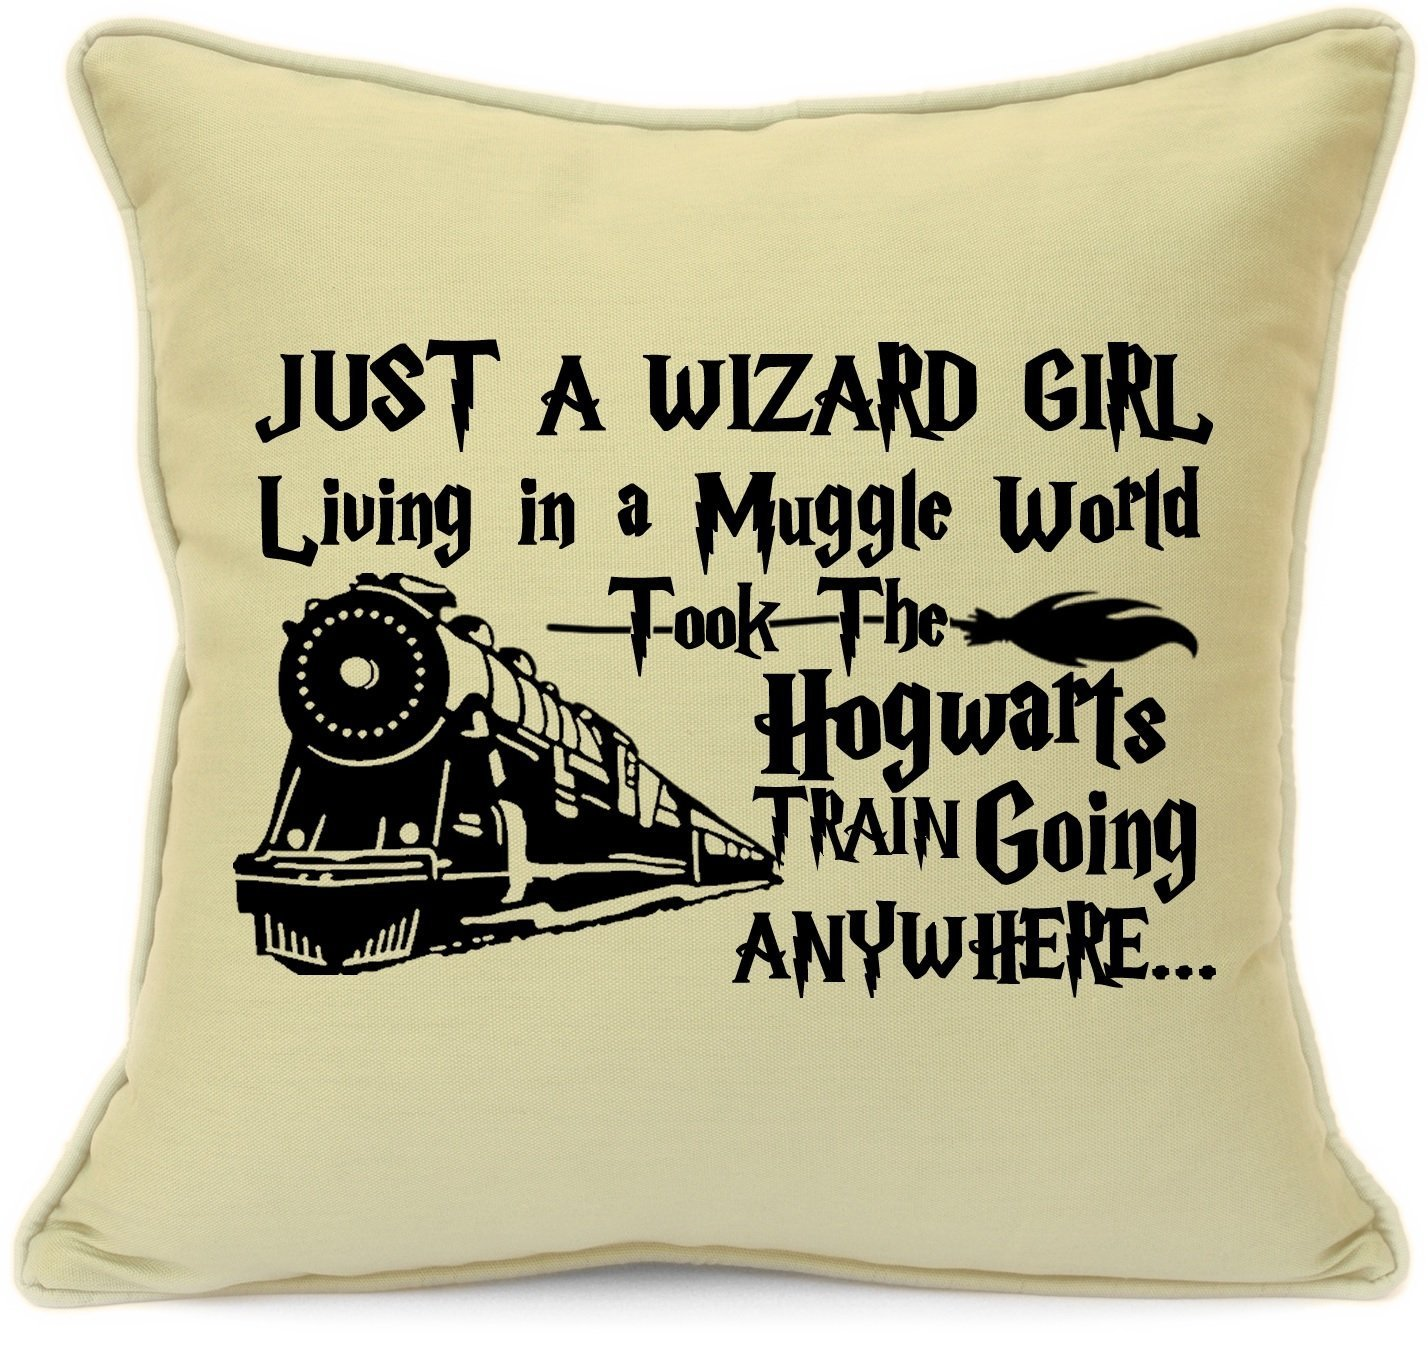 Presents Gifts for Kids Girls Boys Teens Children Birthday Christmas Xmas Harry Potter Fans Wizard Girl Muggle World Hogwarts Cushion Cover 18 inch 45 cm Unique Idea